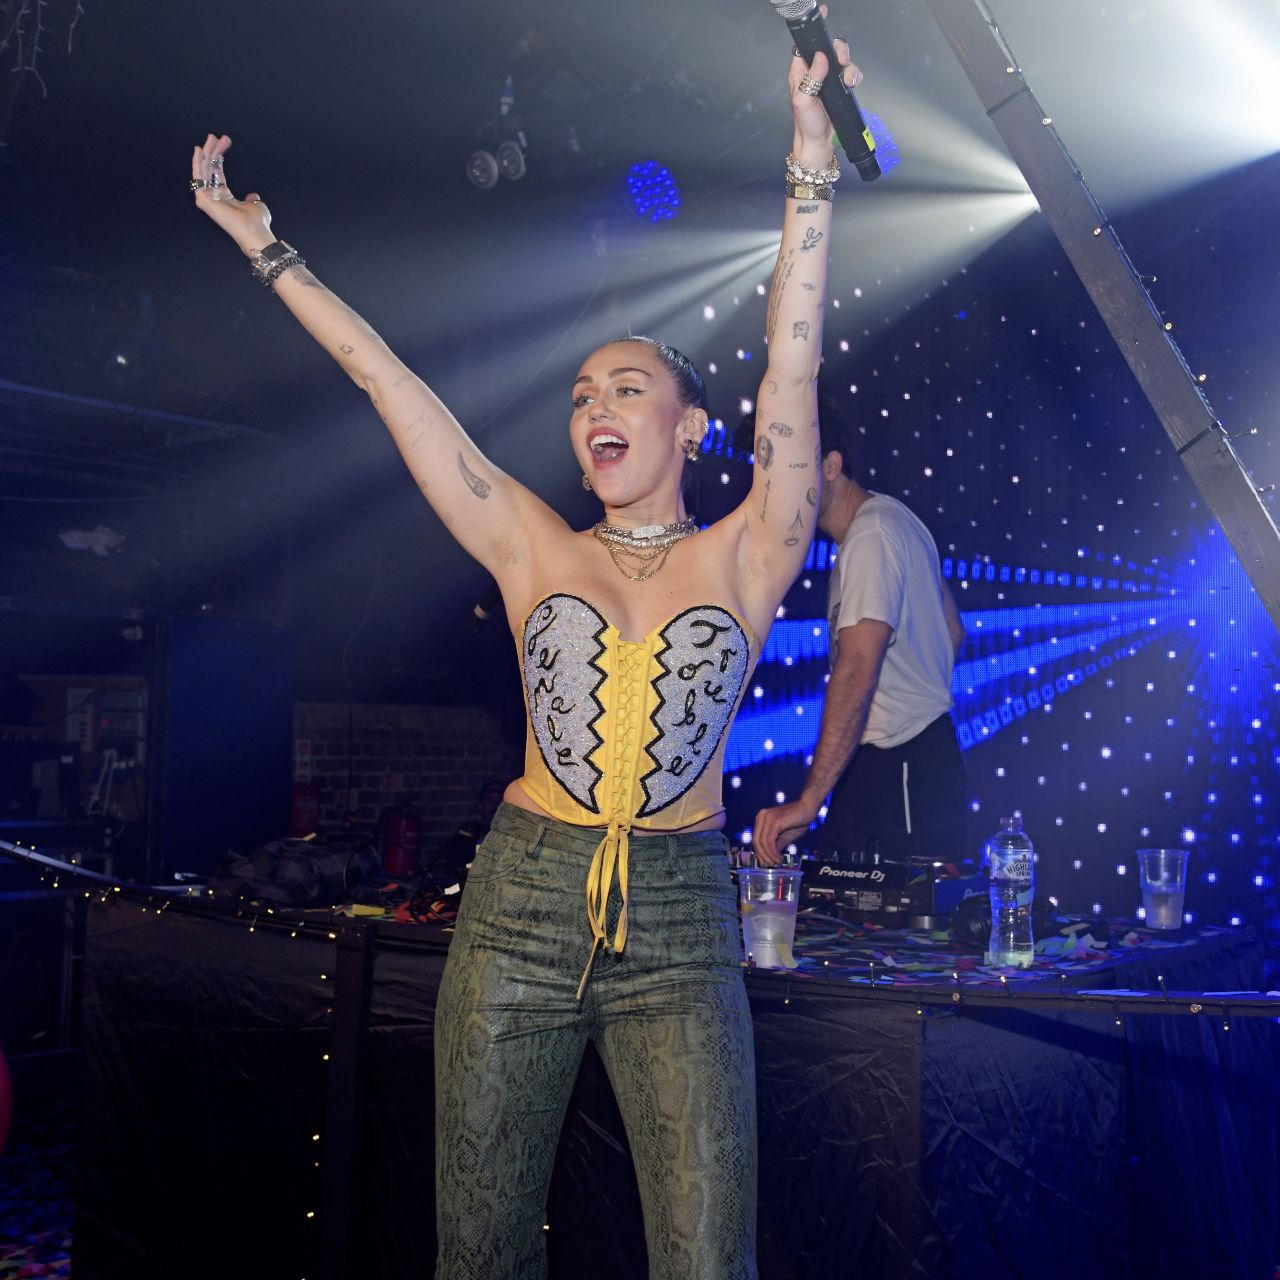 Miley Cyrus – Performs Live at G-A-Y Night Club in London